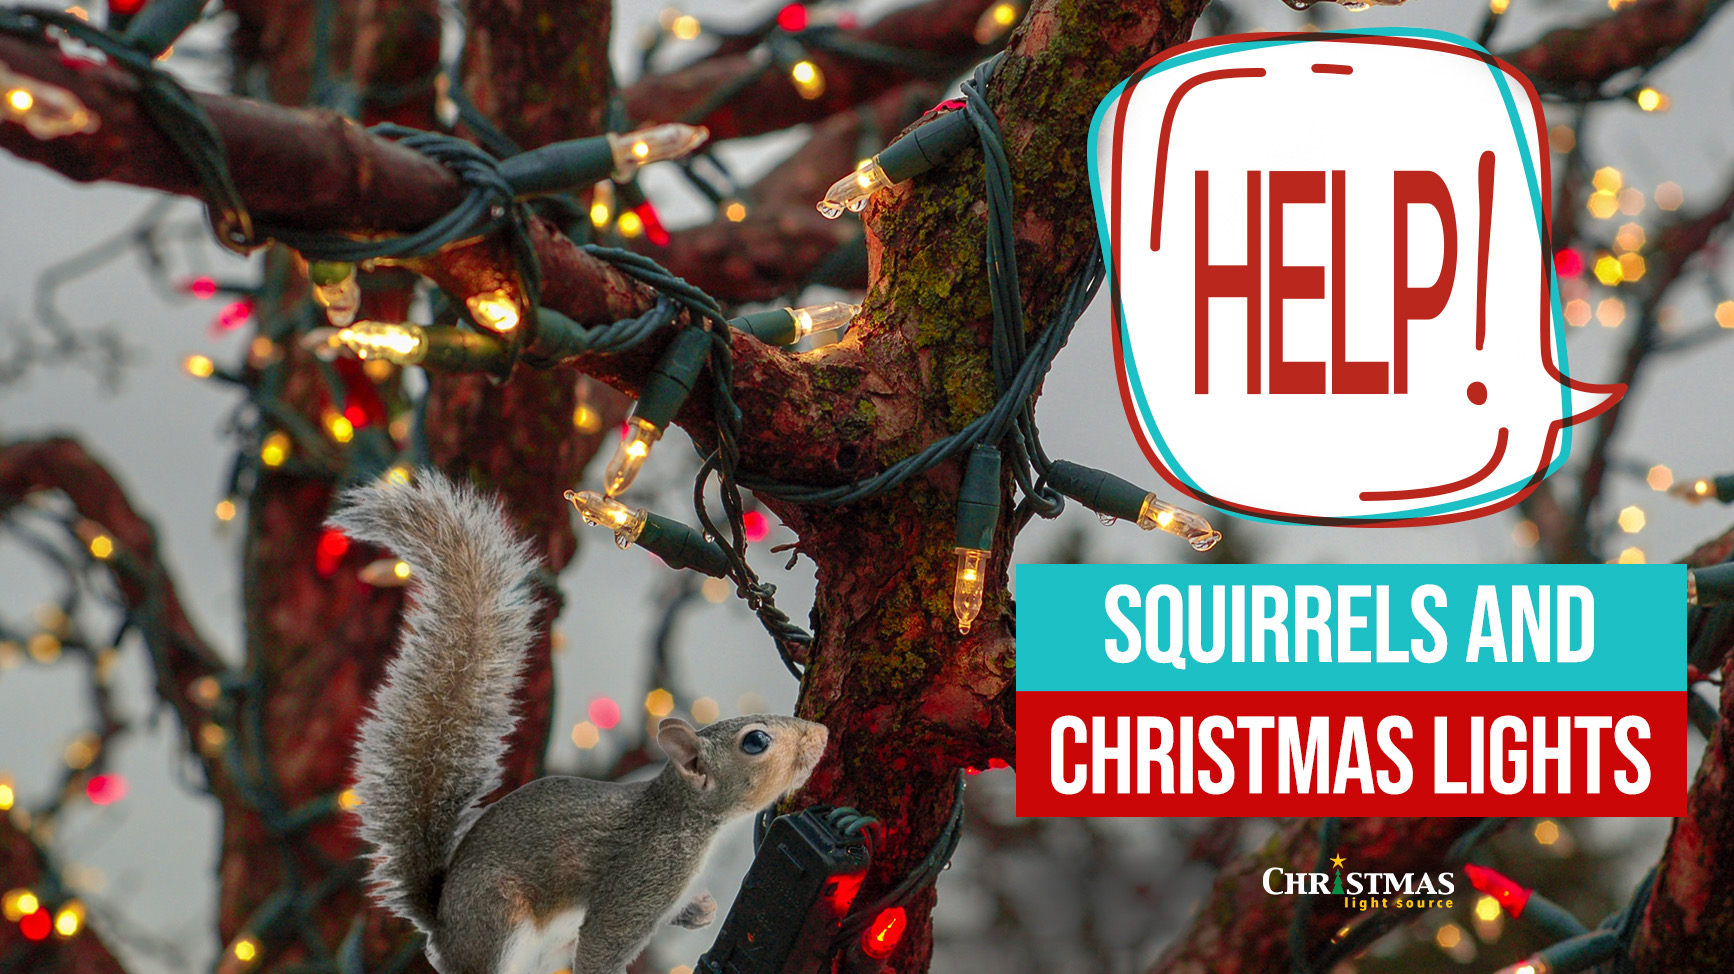 Help! Squirrels and Christmas Lights (They're eating my ... on deer eat, penguins eat, cows eat, tigers eat, snakes eat, spiders eat, seals eat, squirrels eat, mice eat, rodents eat,